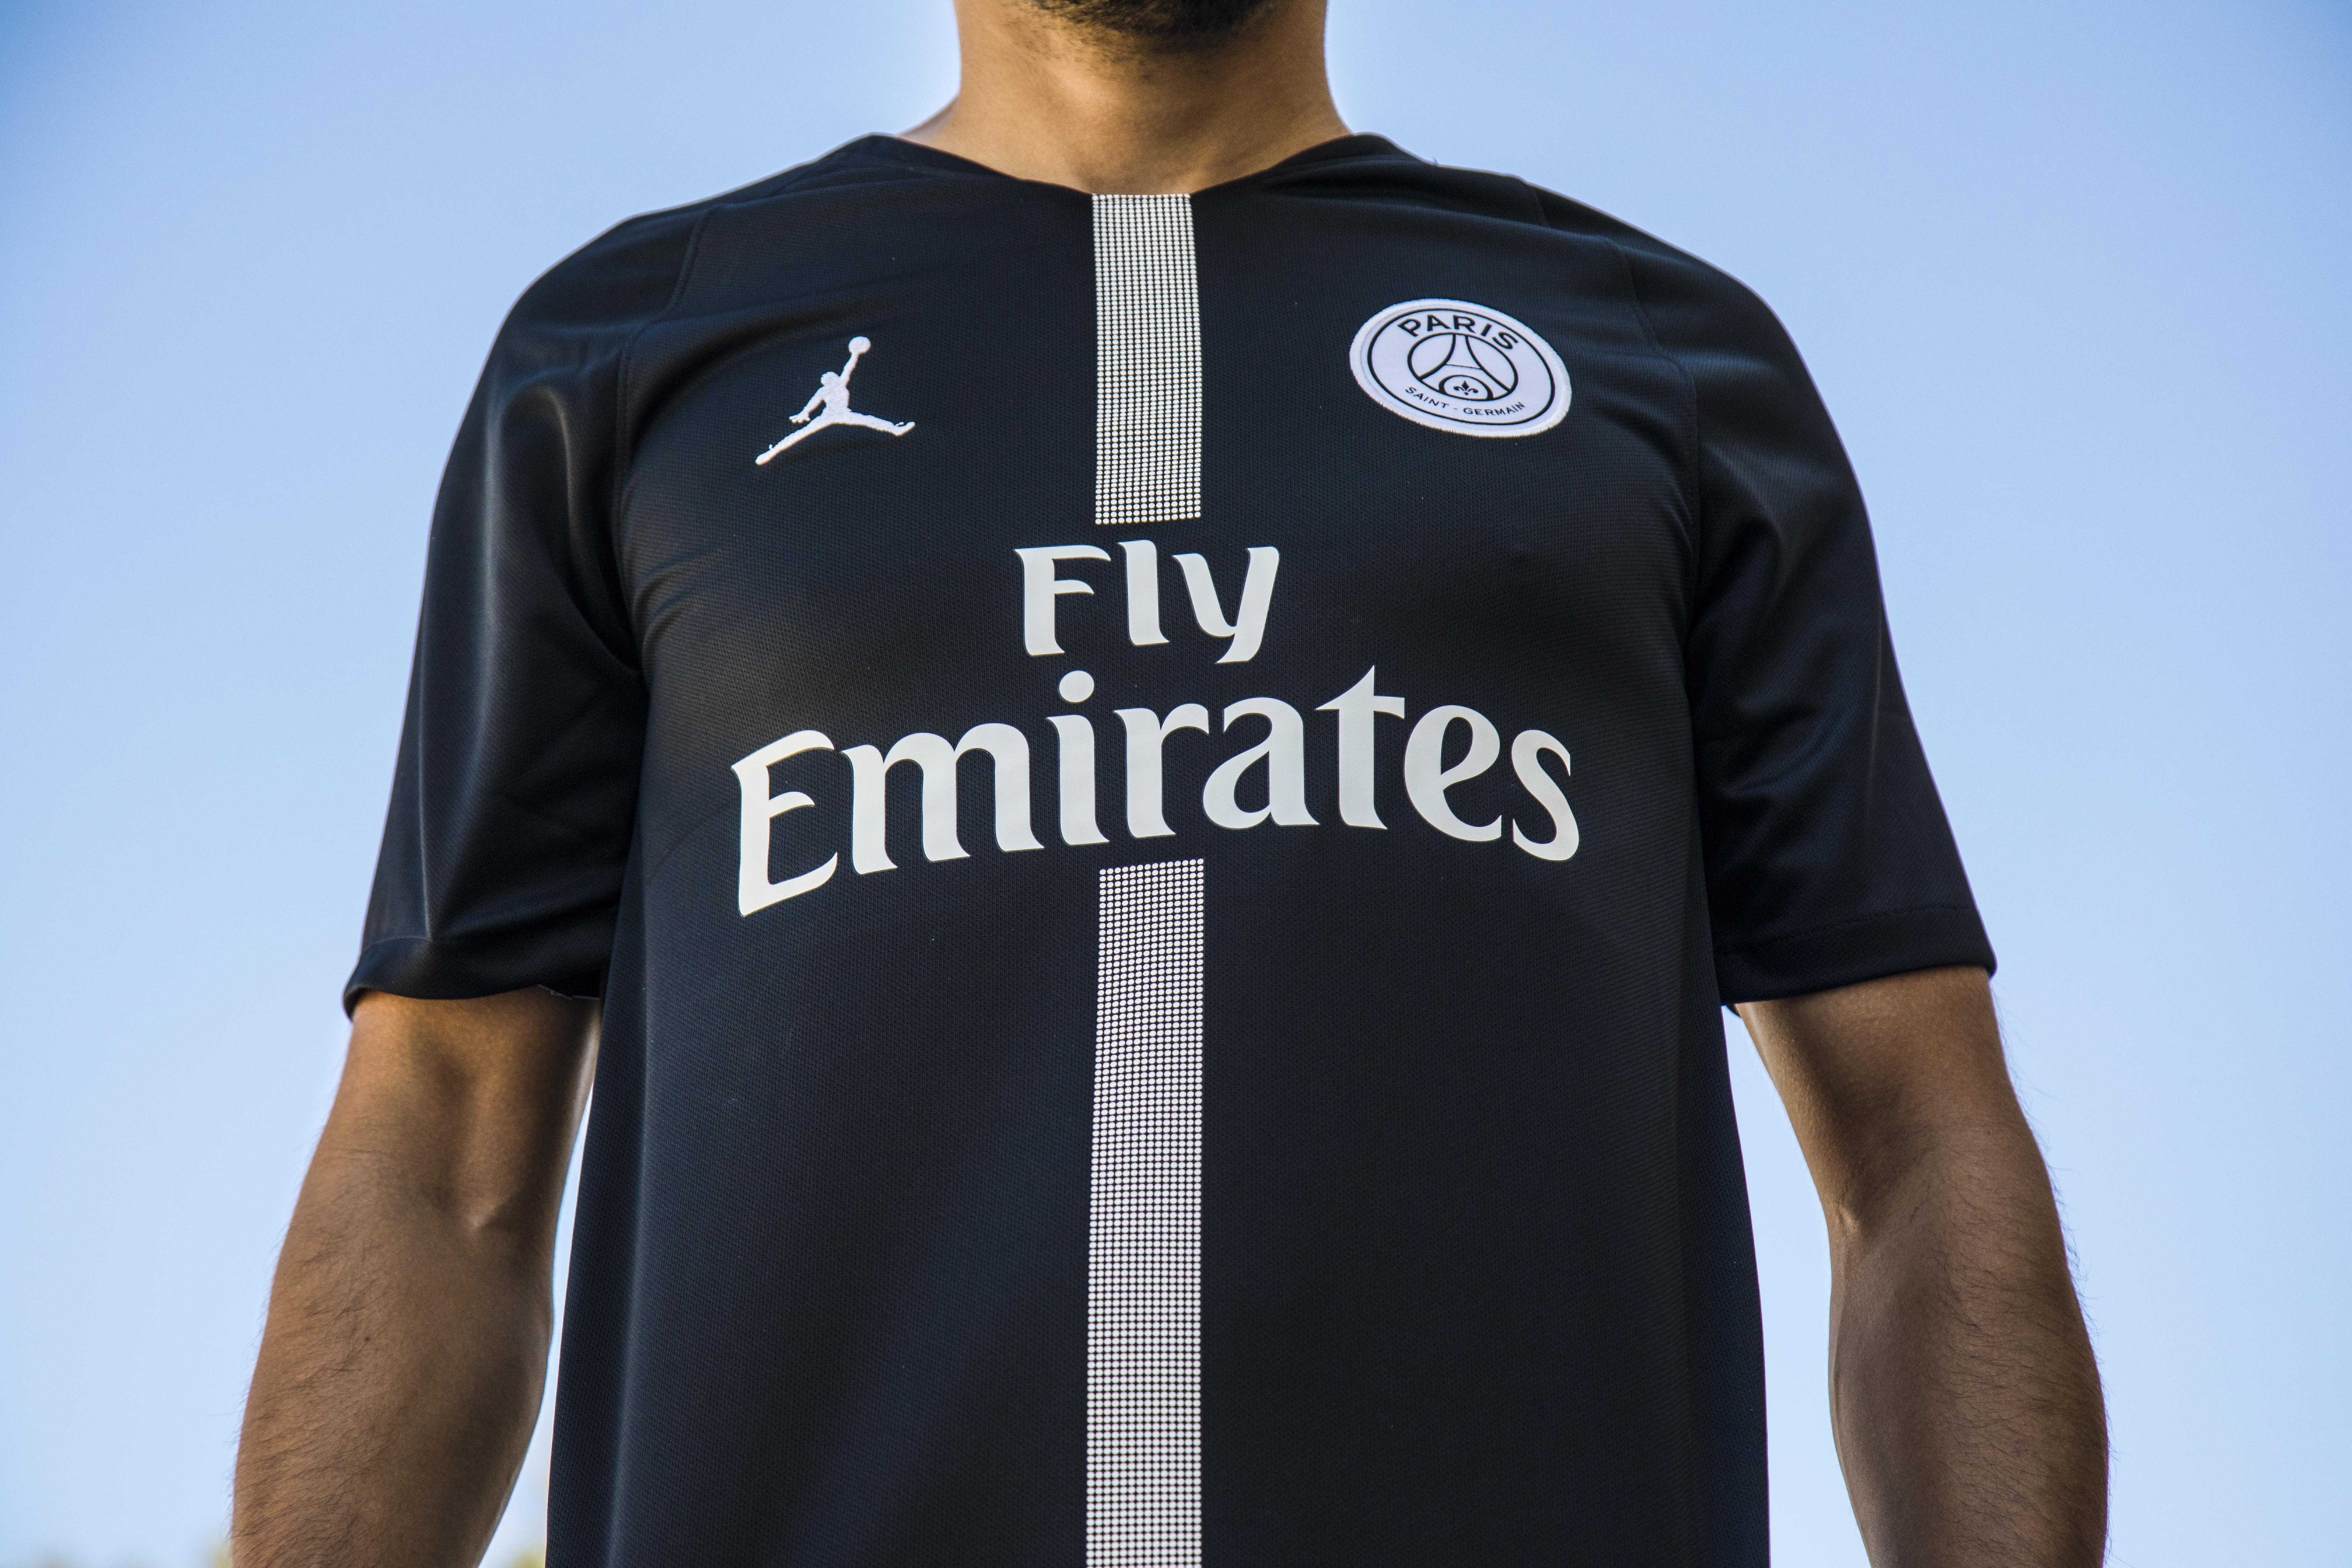 separation shoes 23322 03028 Jordan PSG Jersey - First Look and All the Details